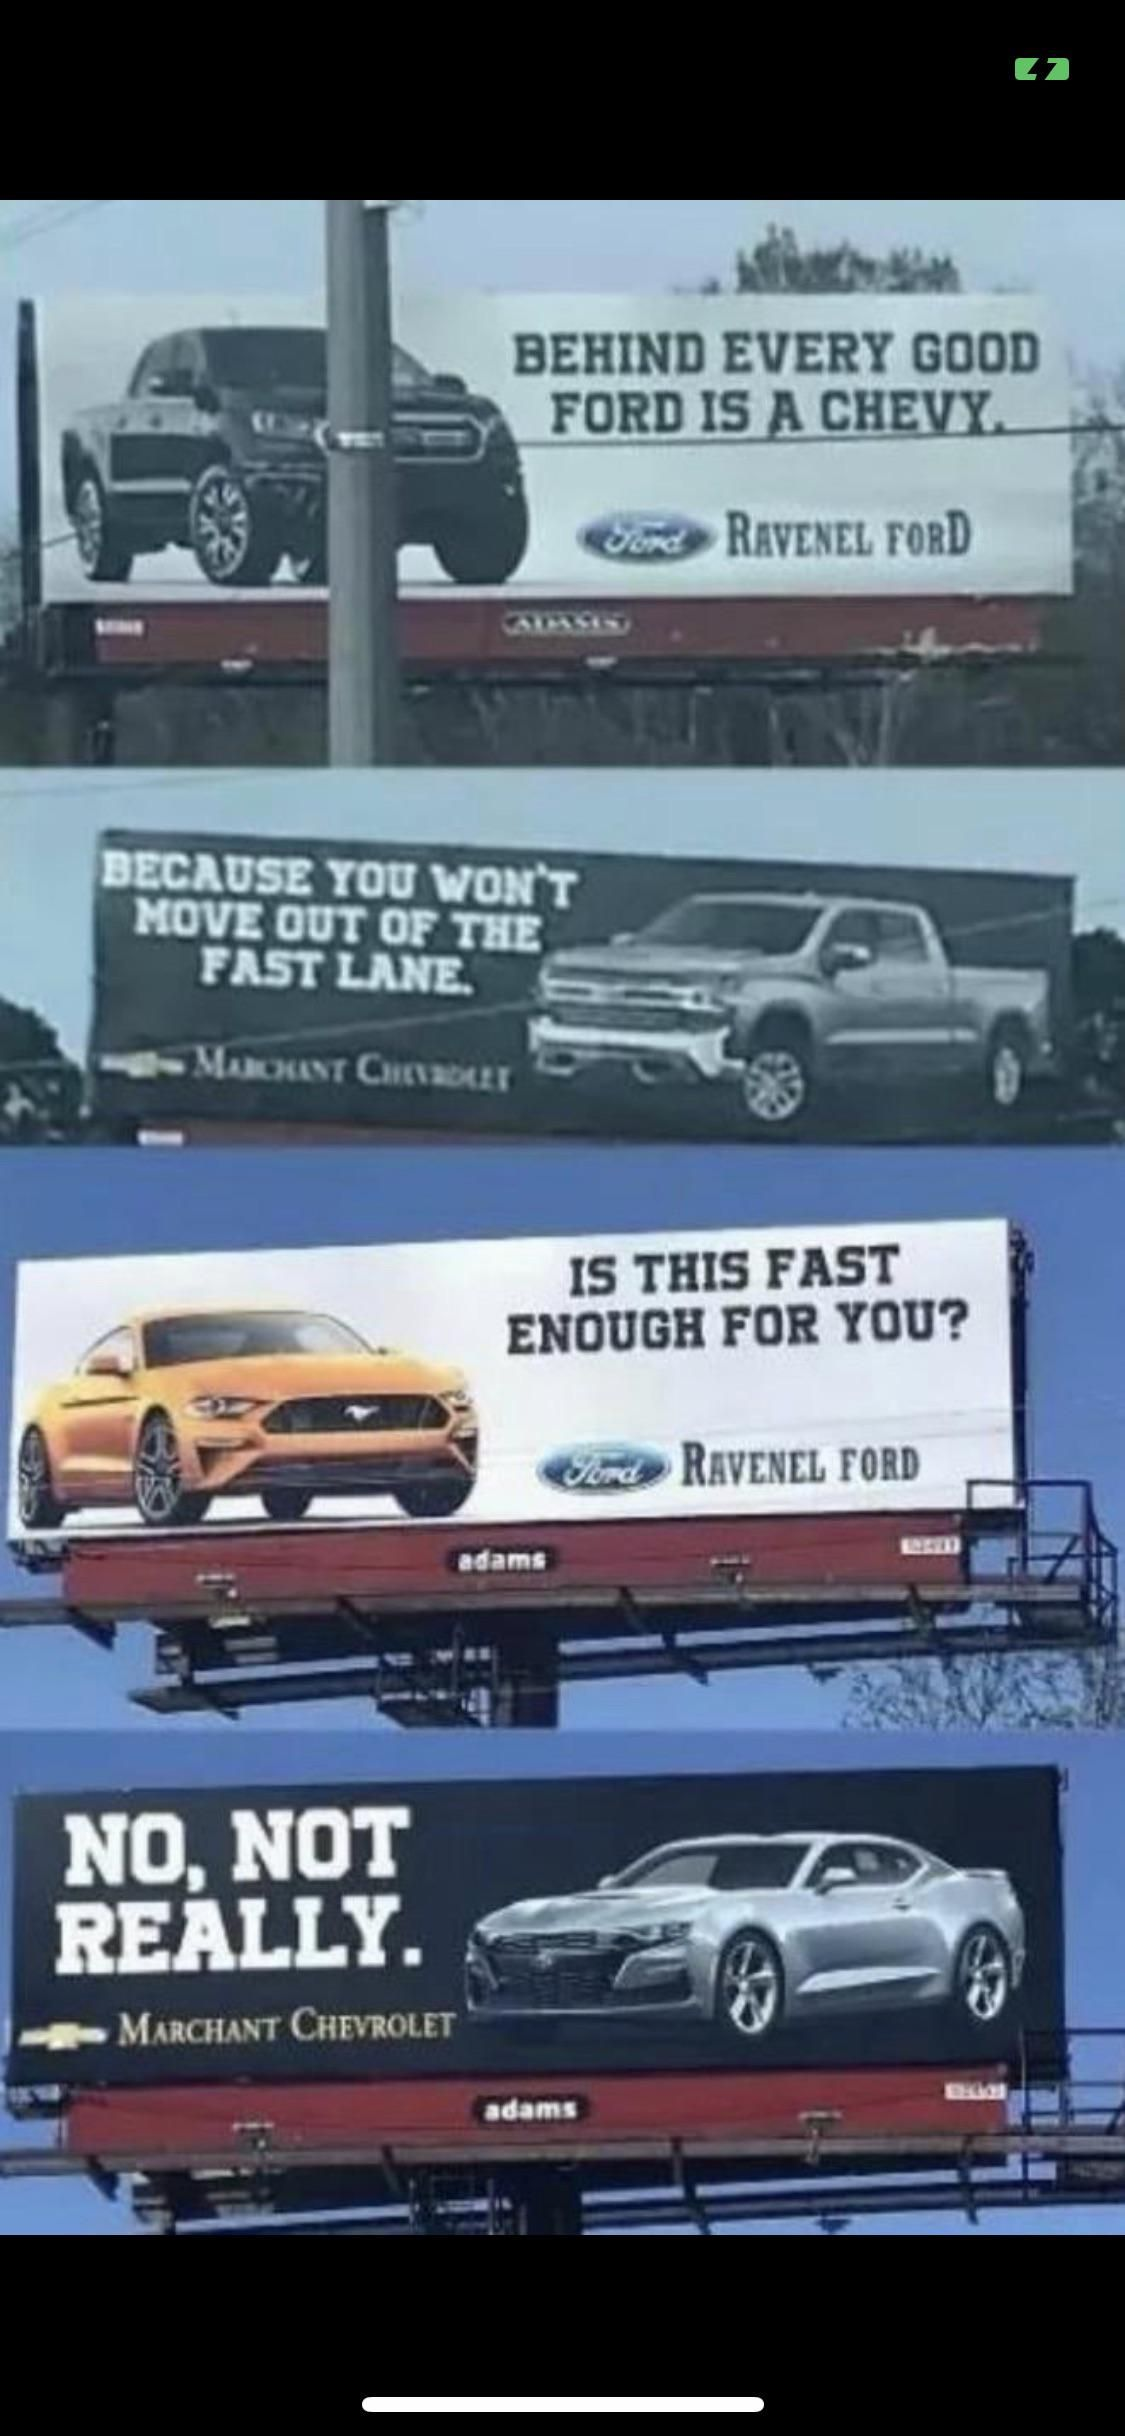 Some serious competition between two car dealerships.